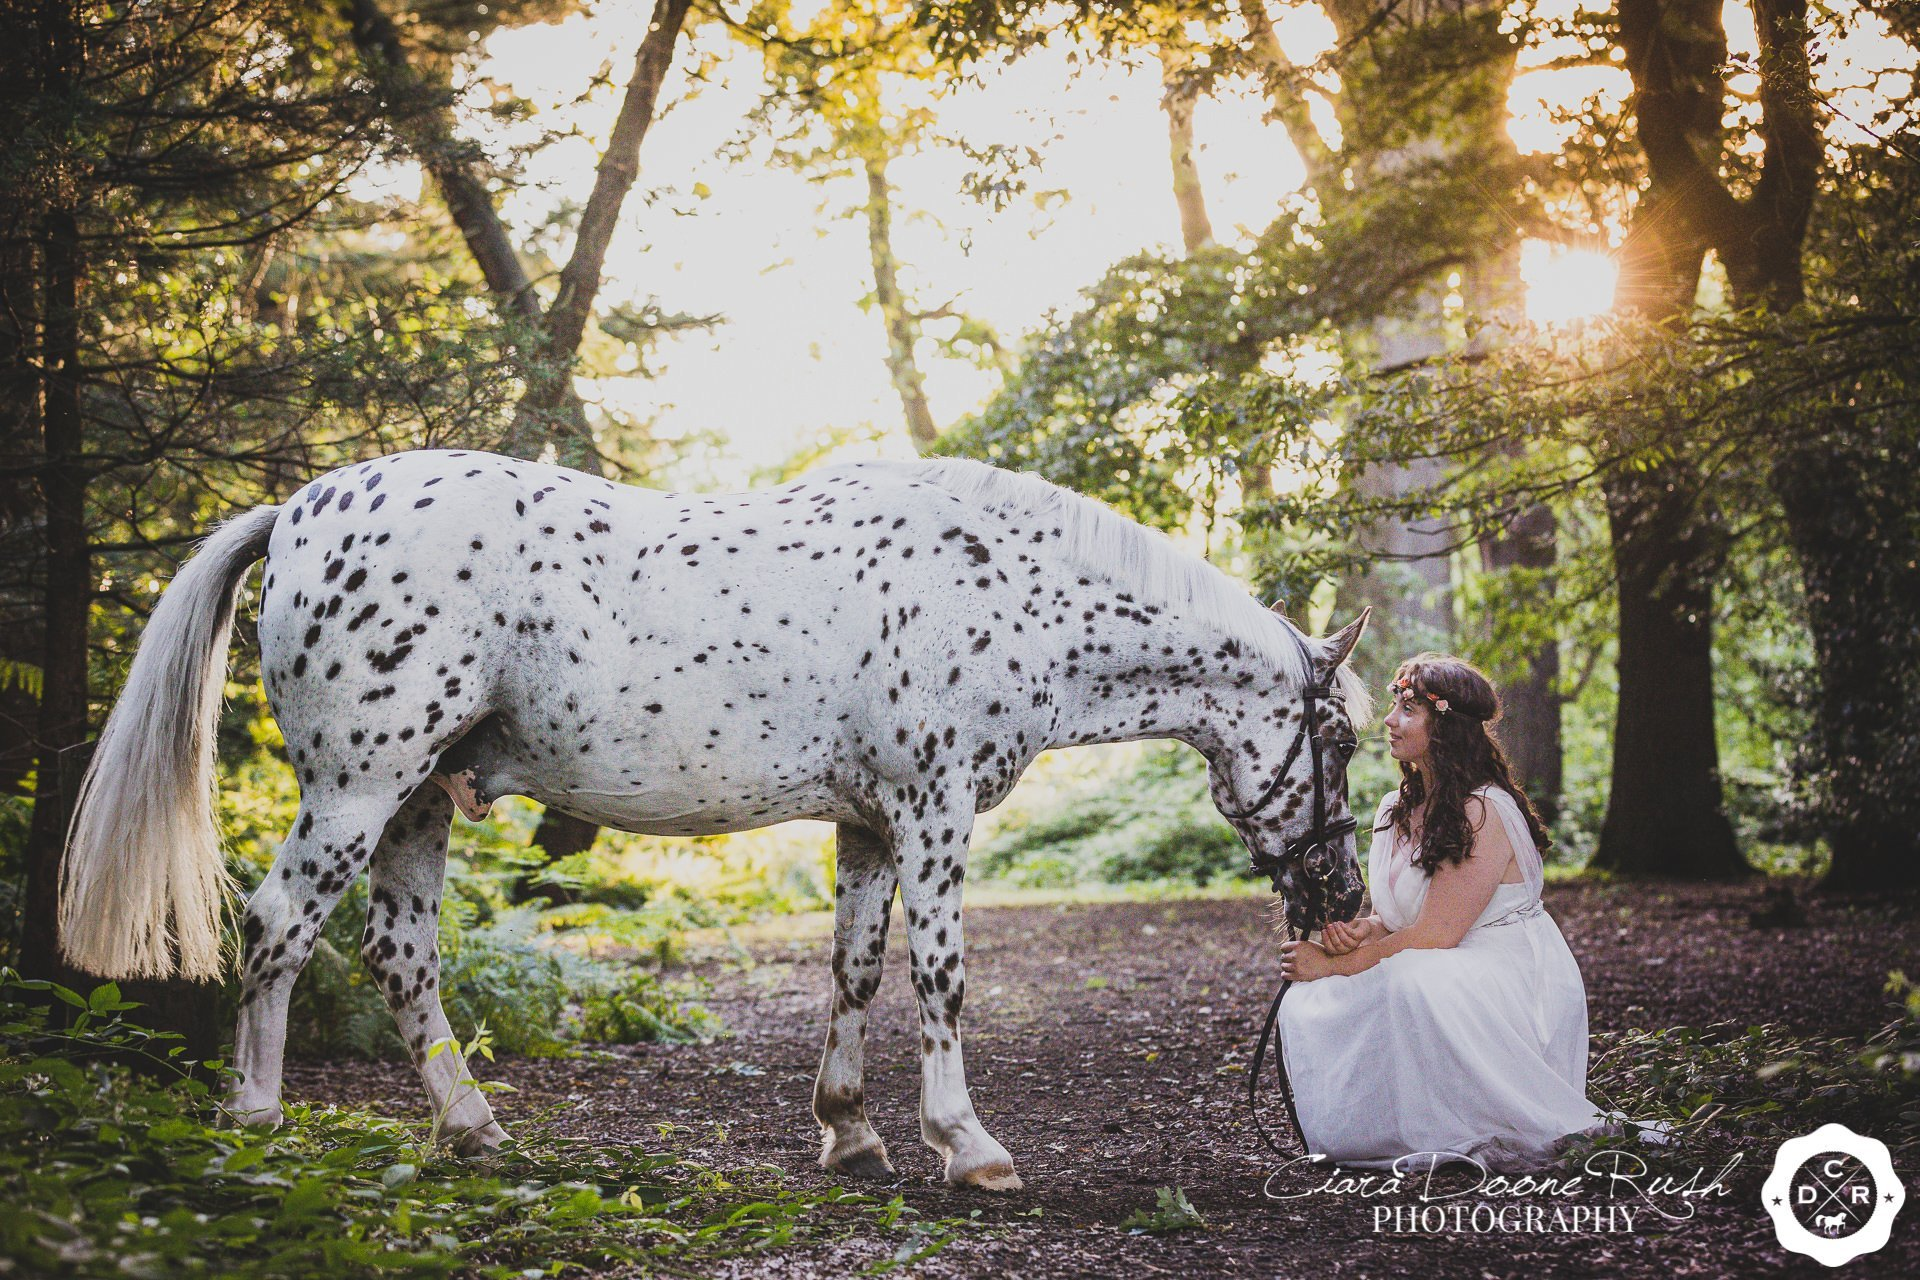 BEST OF 2019: ELLIE // A HORSE & RIDER PHOTO SHOOT AT MARBURY PARK